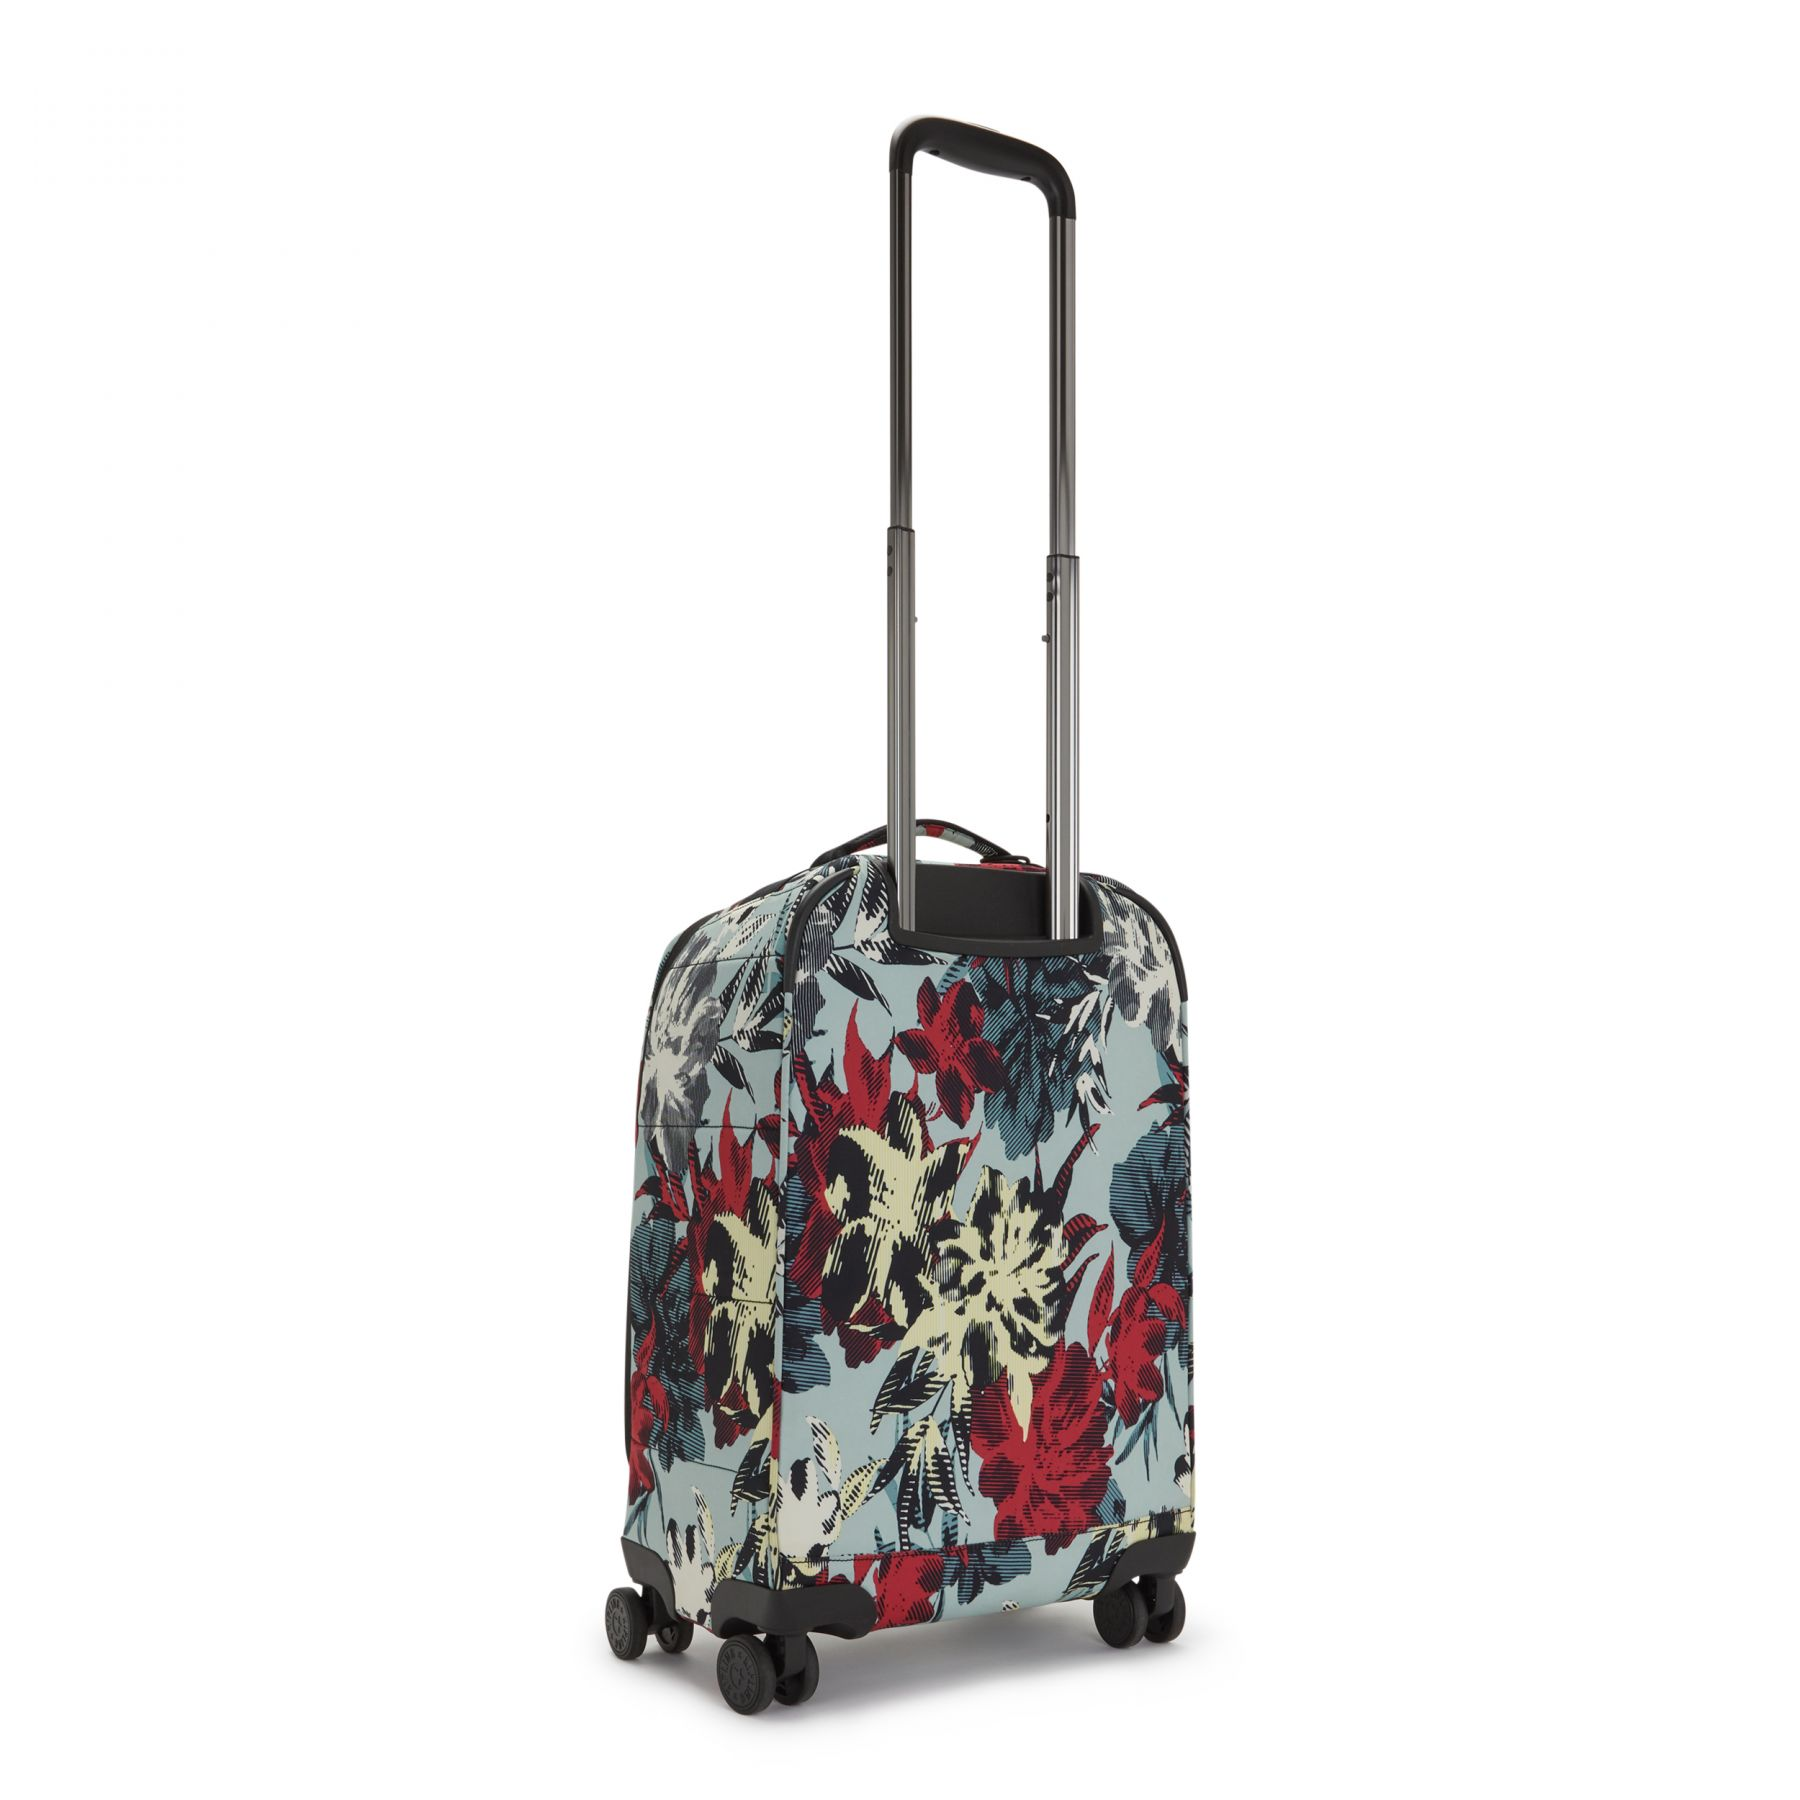 CITY SPINNER S LUGGAGE by Kipling - Back view